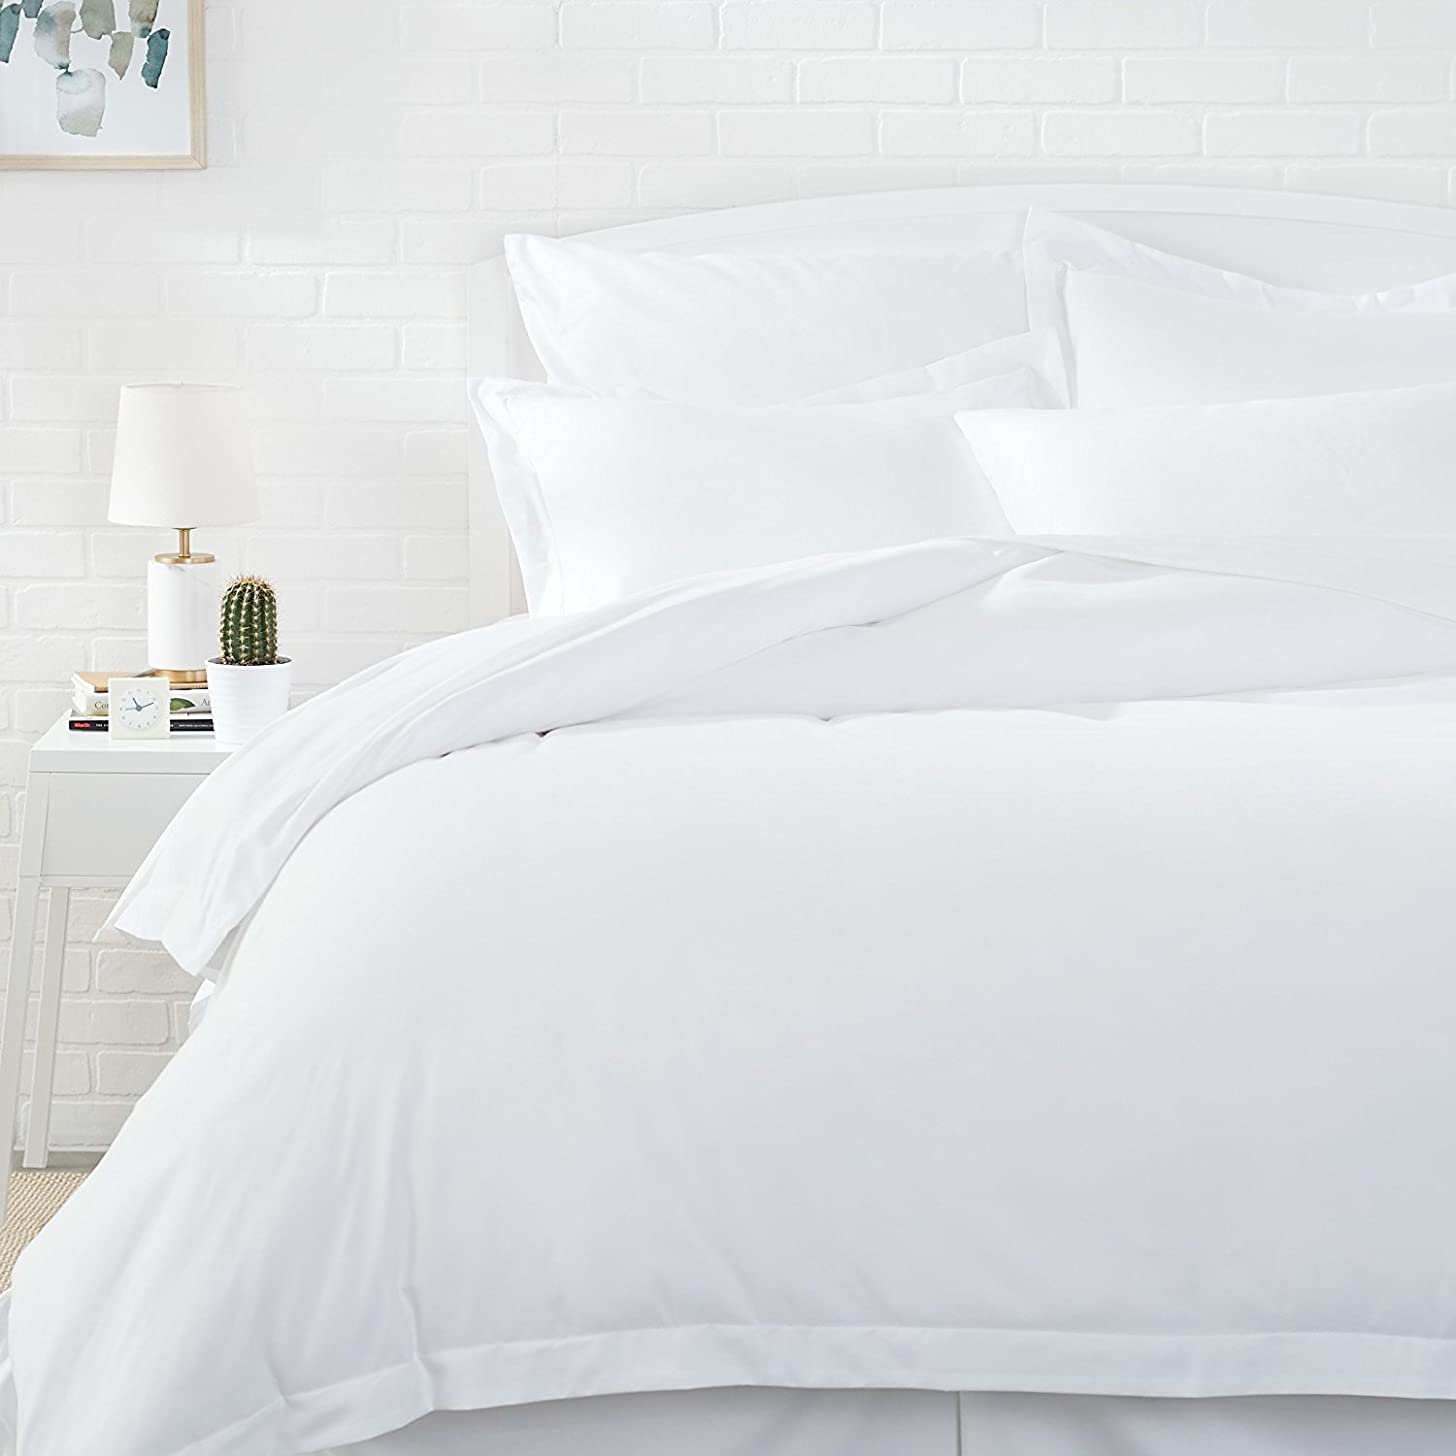 AmazonBasics Microfiber Duvet Cover Set - Lightweight and Soft - Twin/Twin XL, Bright White